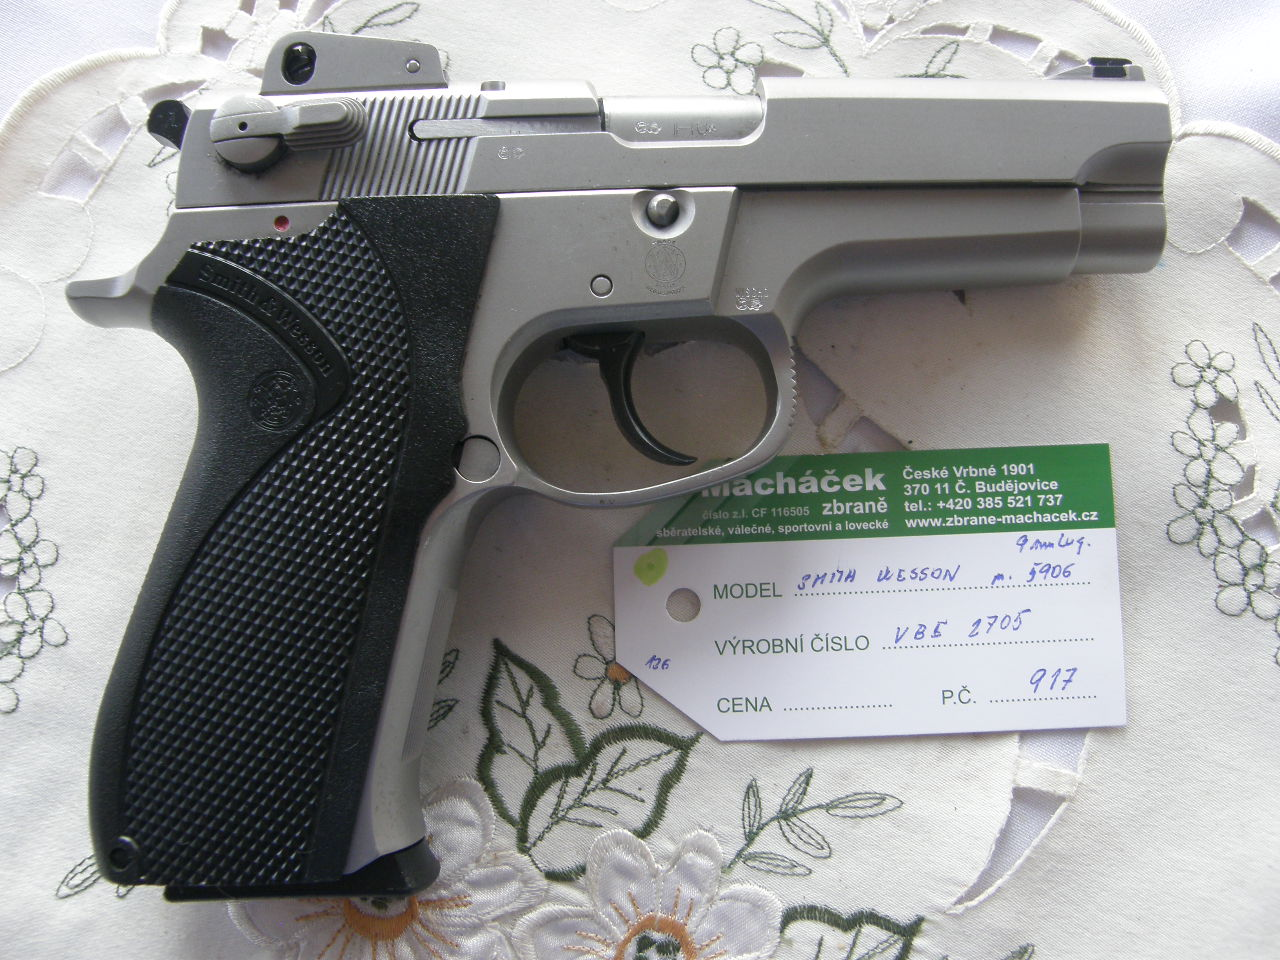 Pistole Smith Wesson Mod. 5906 v.č.VBE 2705 r. 9 mm Luger